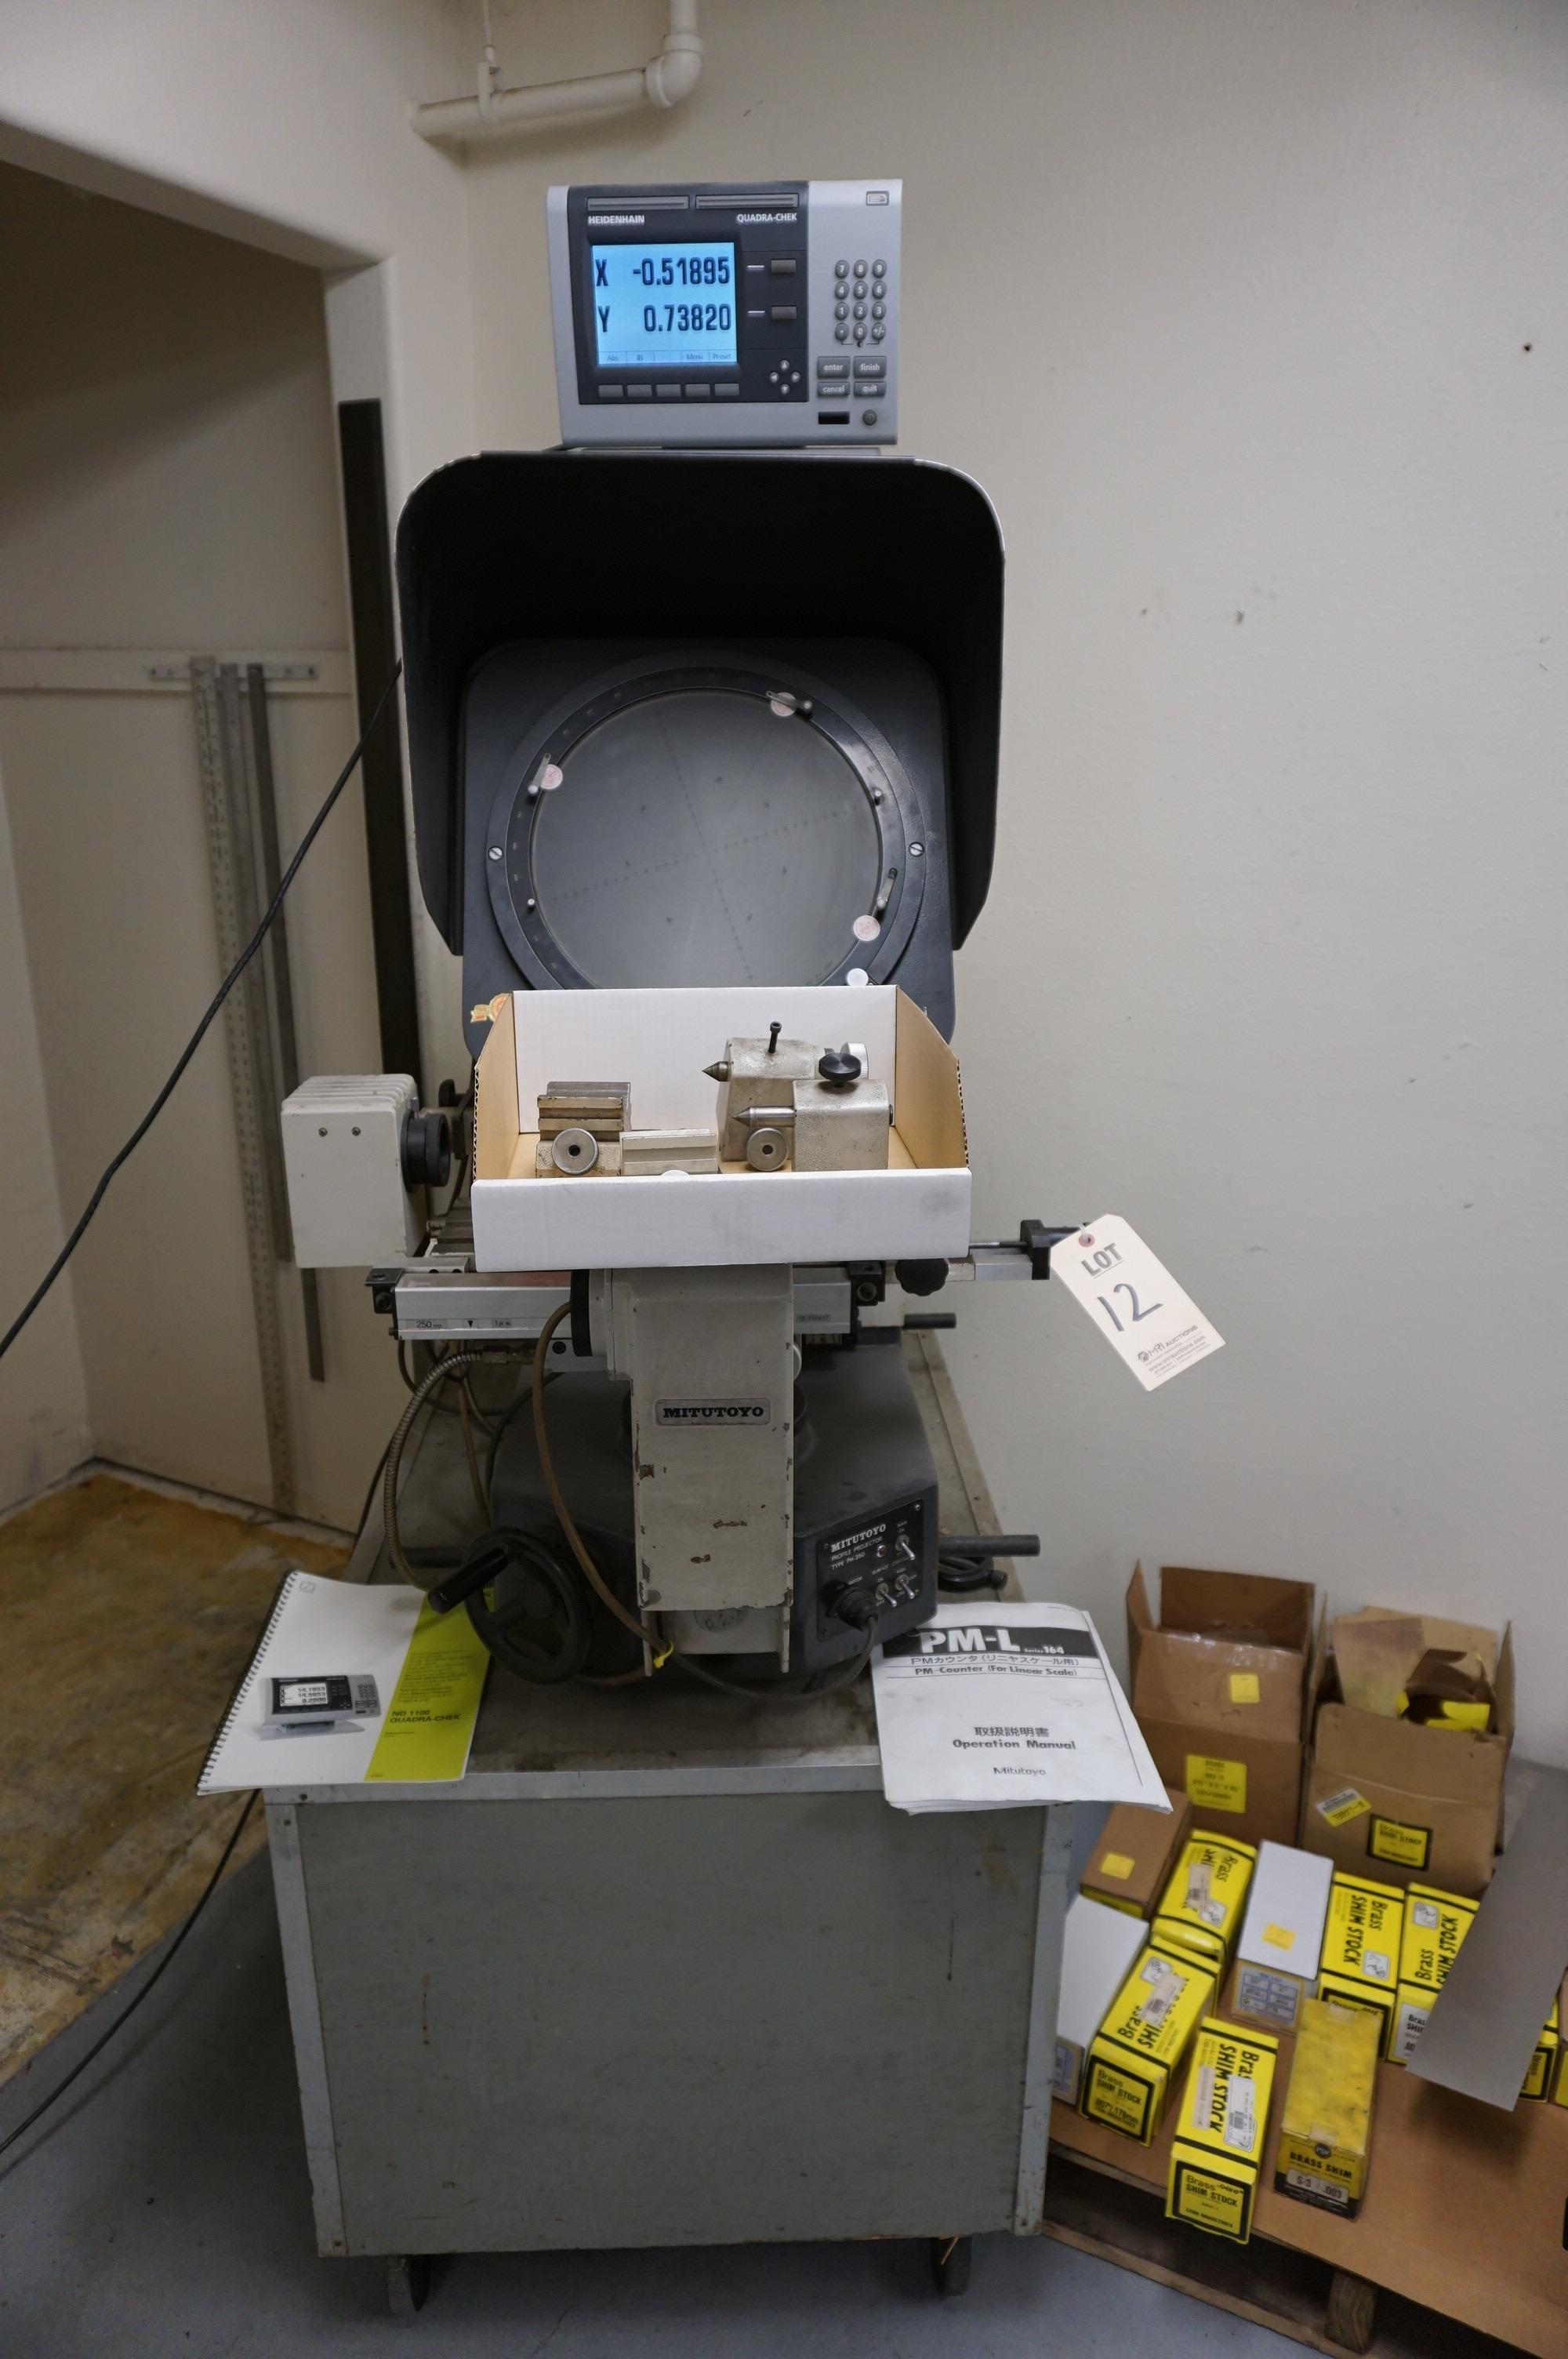 MITUTOYO PH-350 OPTICAL COMPARATOR, CODE 172-101, S/N 570 WITH HEIDENHAIN ND-1100 QUADRA-CHEK DRO,